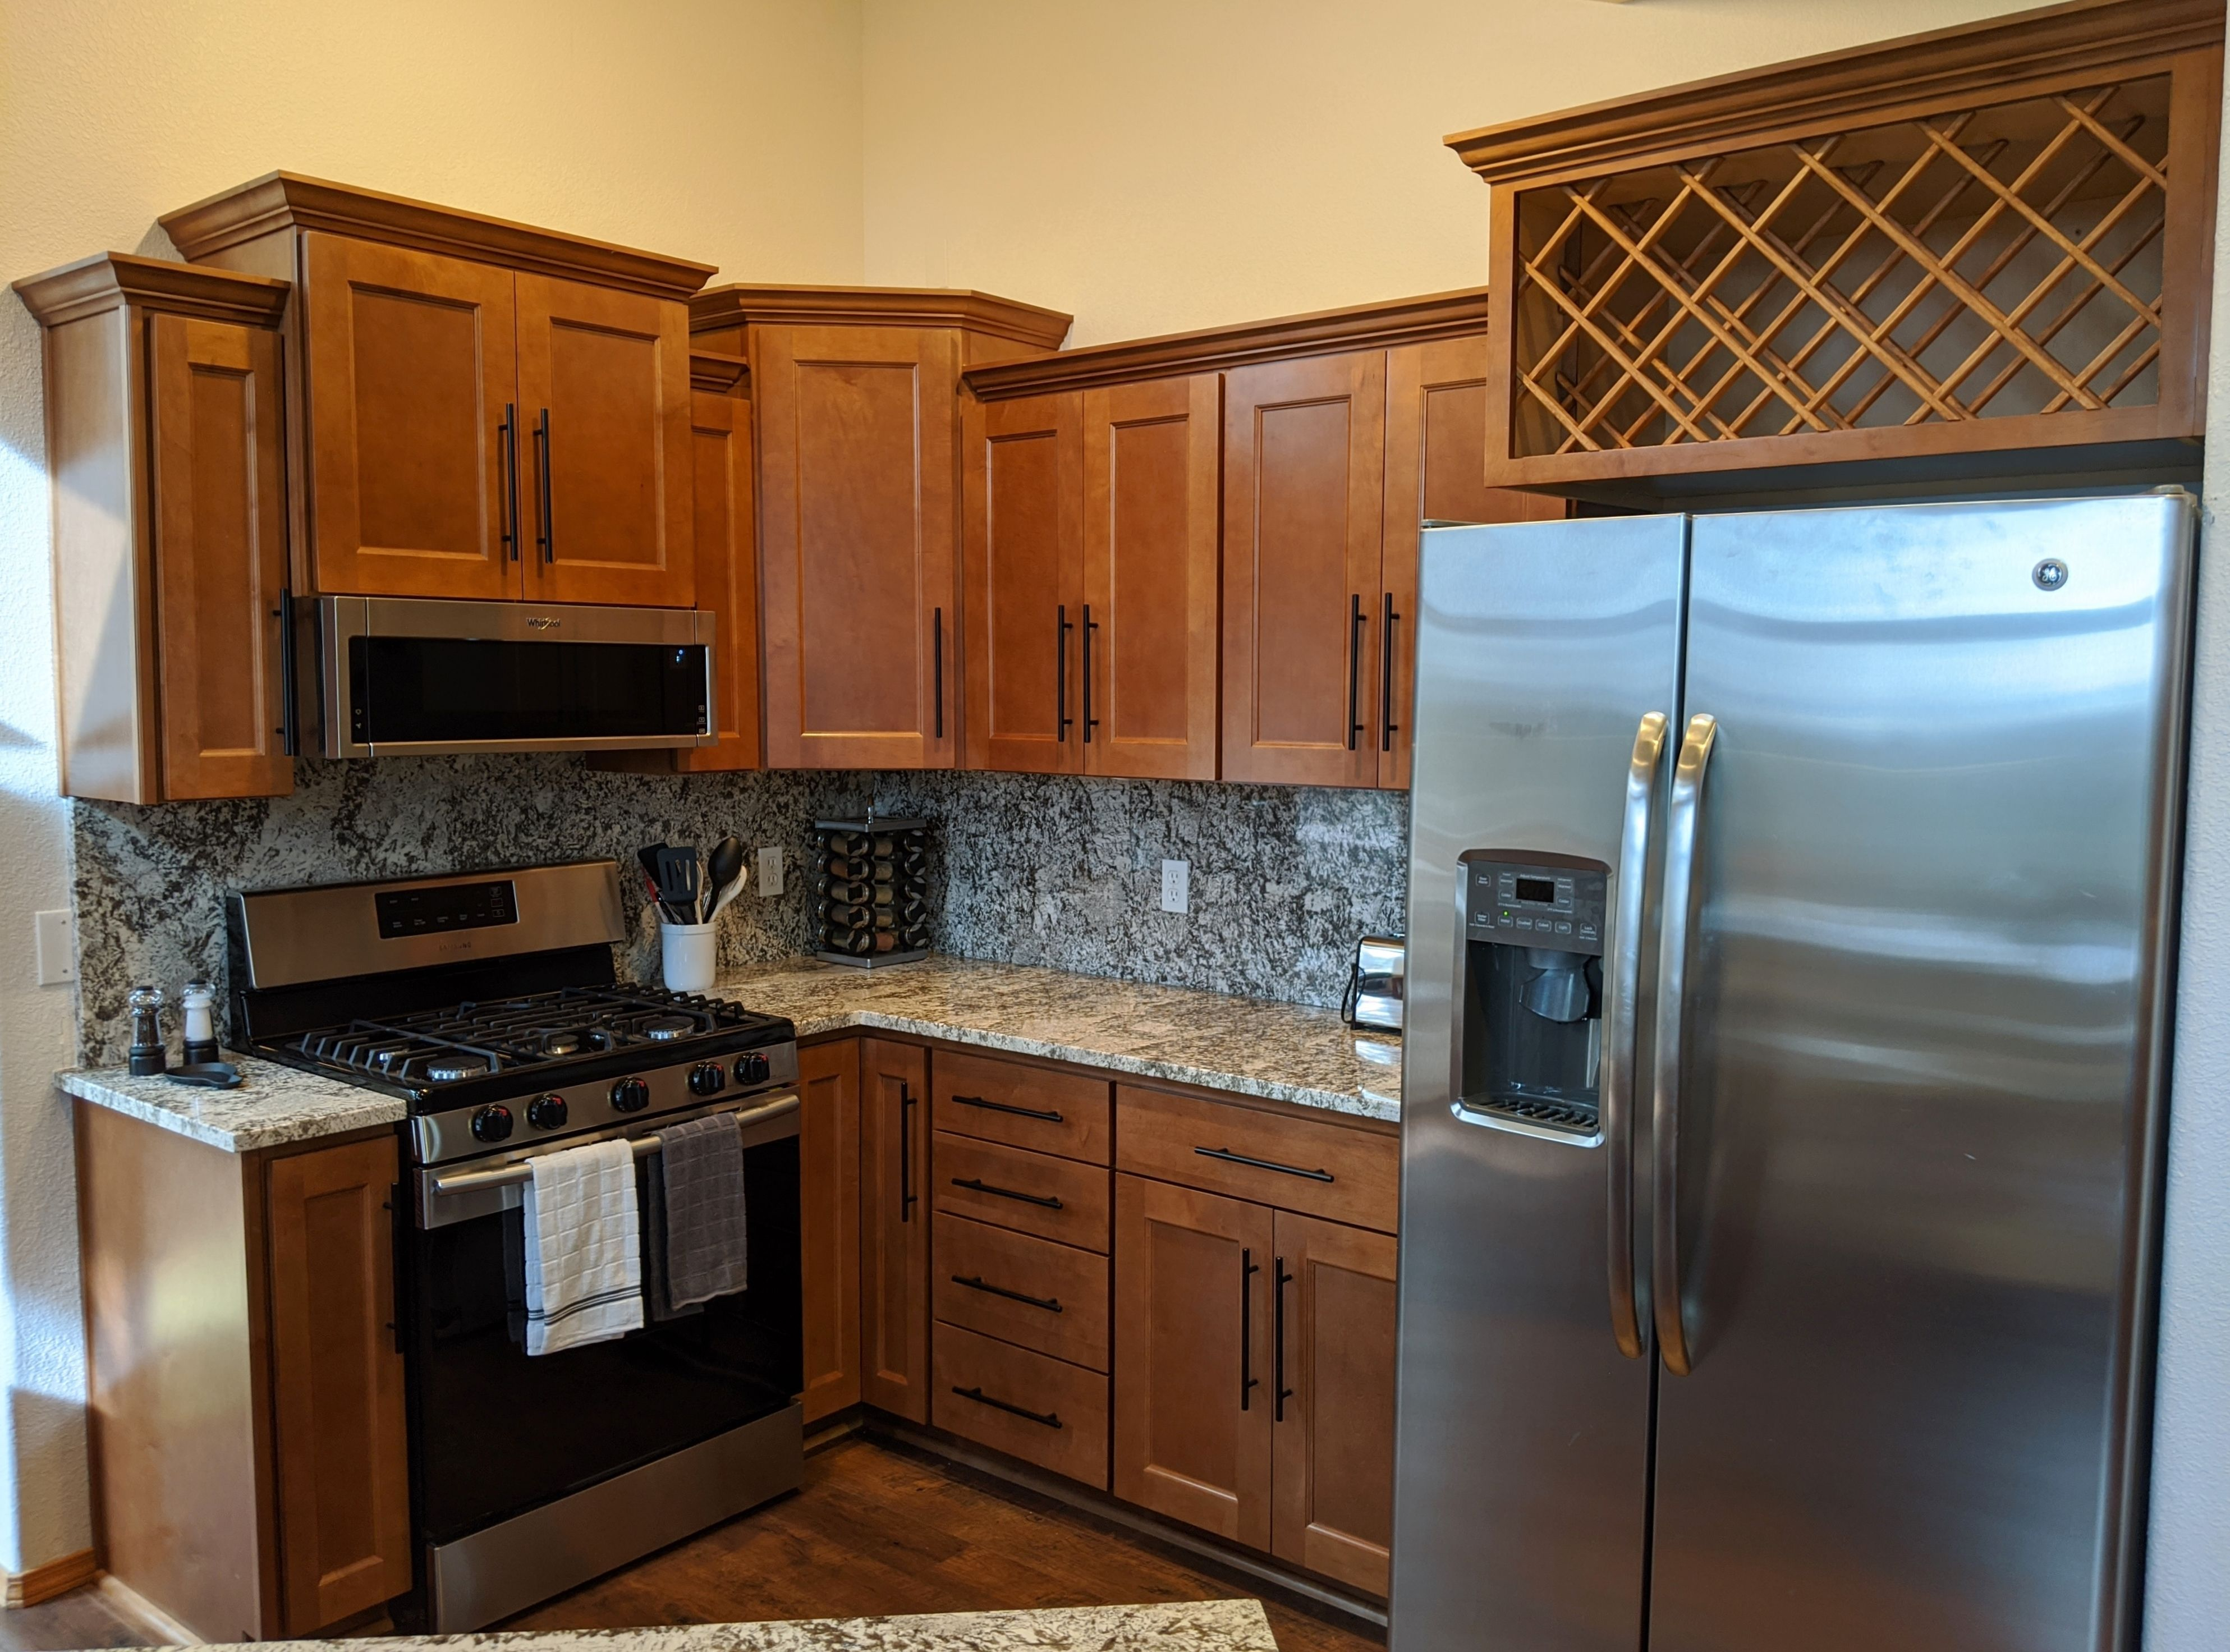 Pin On Cabinet Refacing